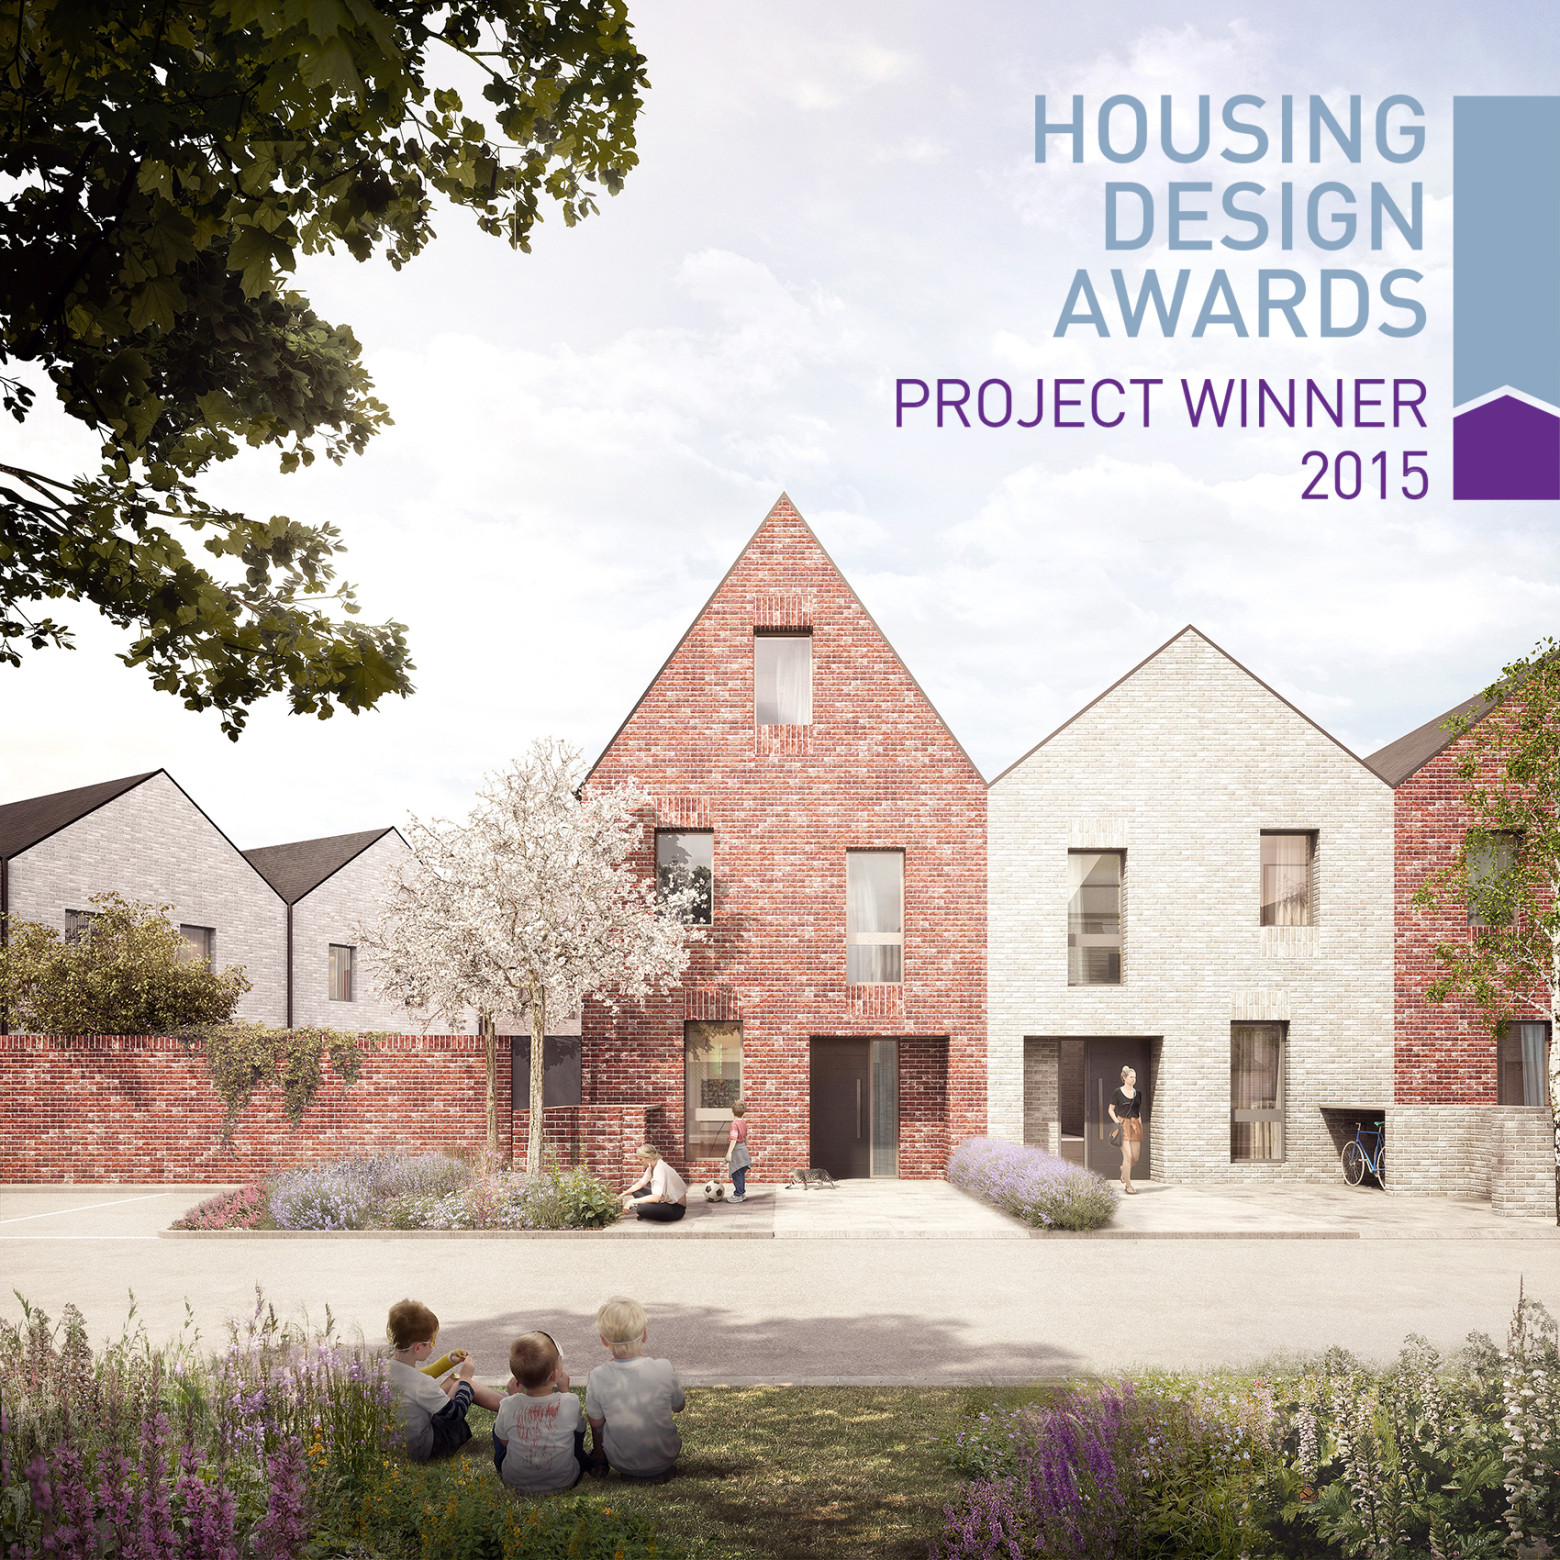 St. Chad's wins Housing Design Awards 2015